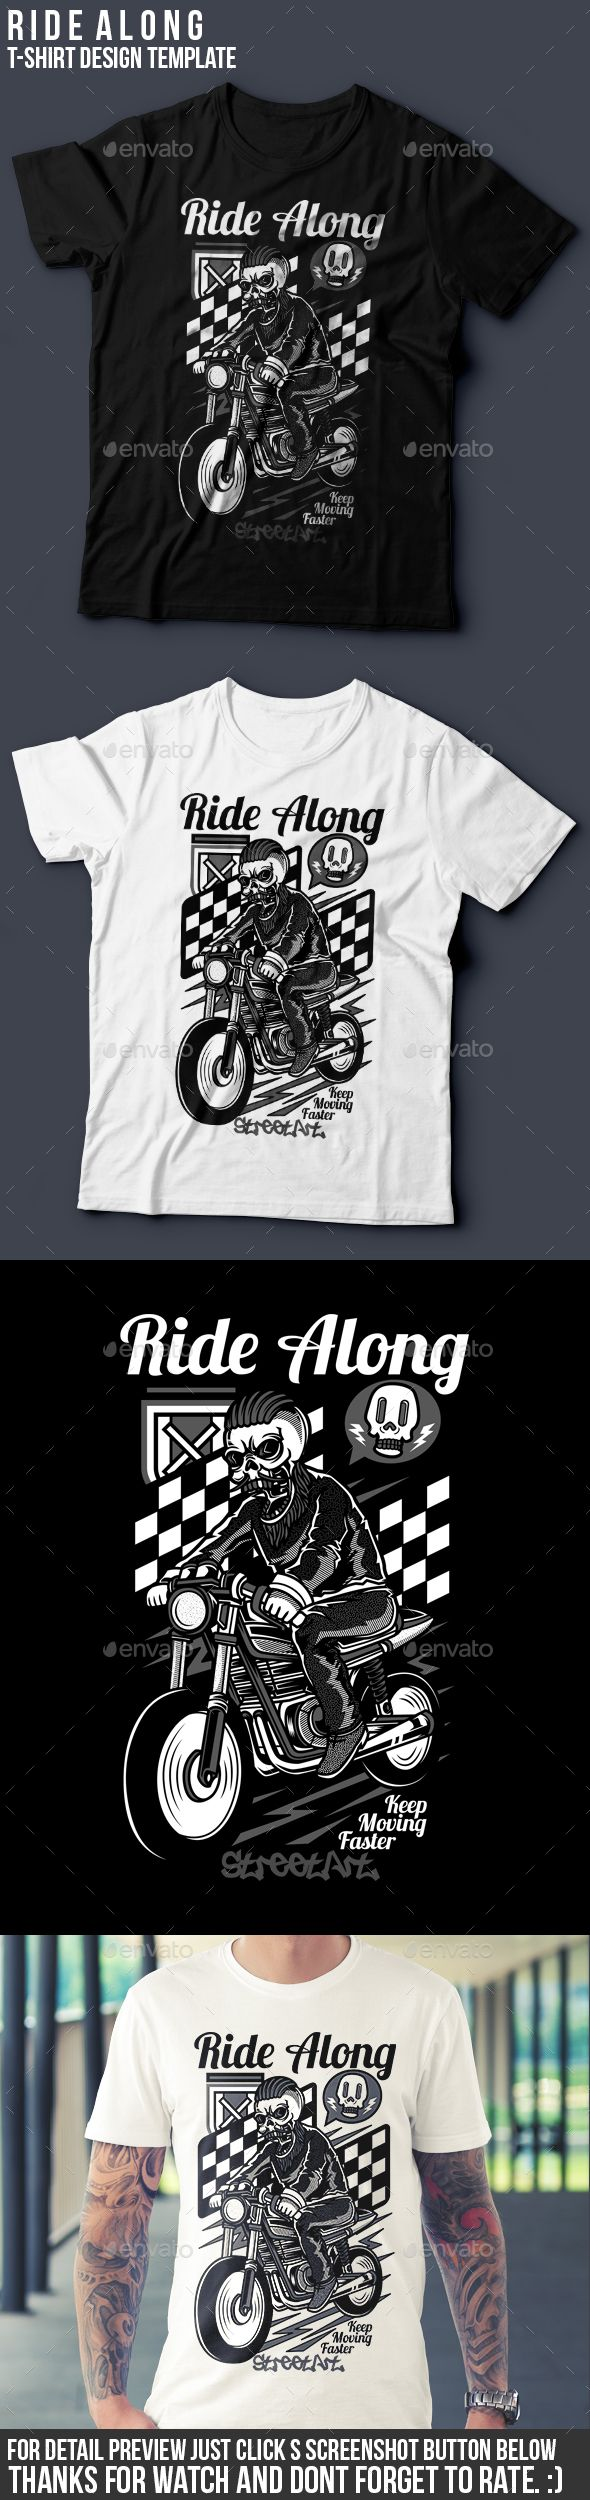 White t shirt eps - Ride Along T Shirt Design